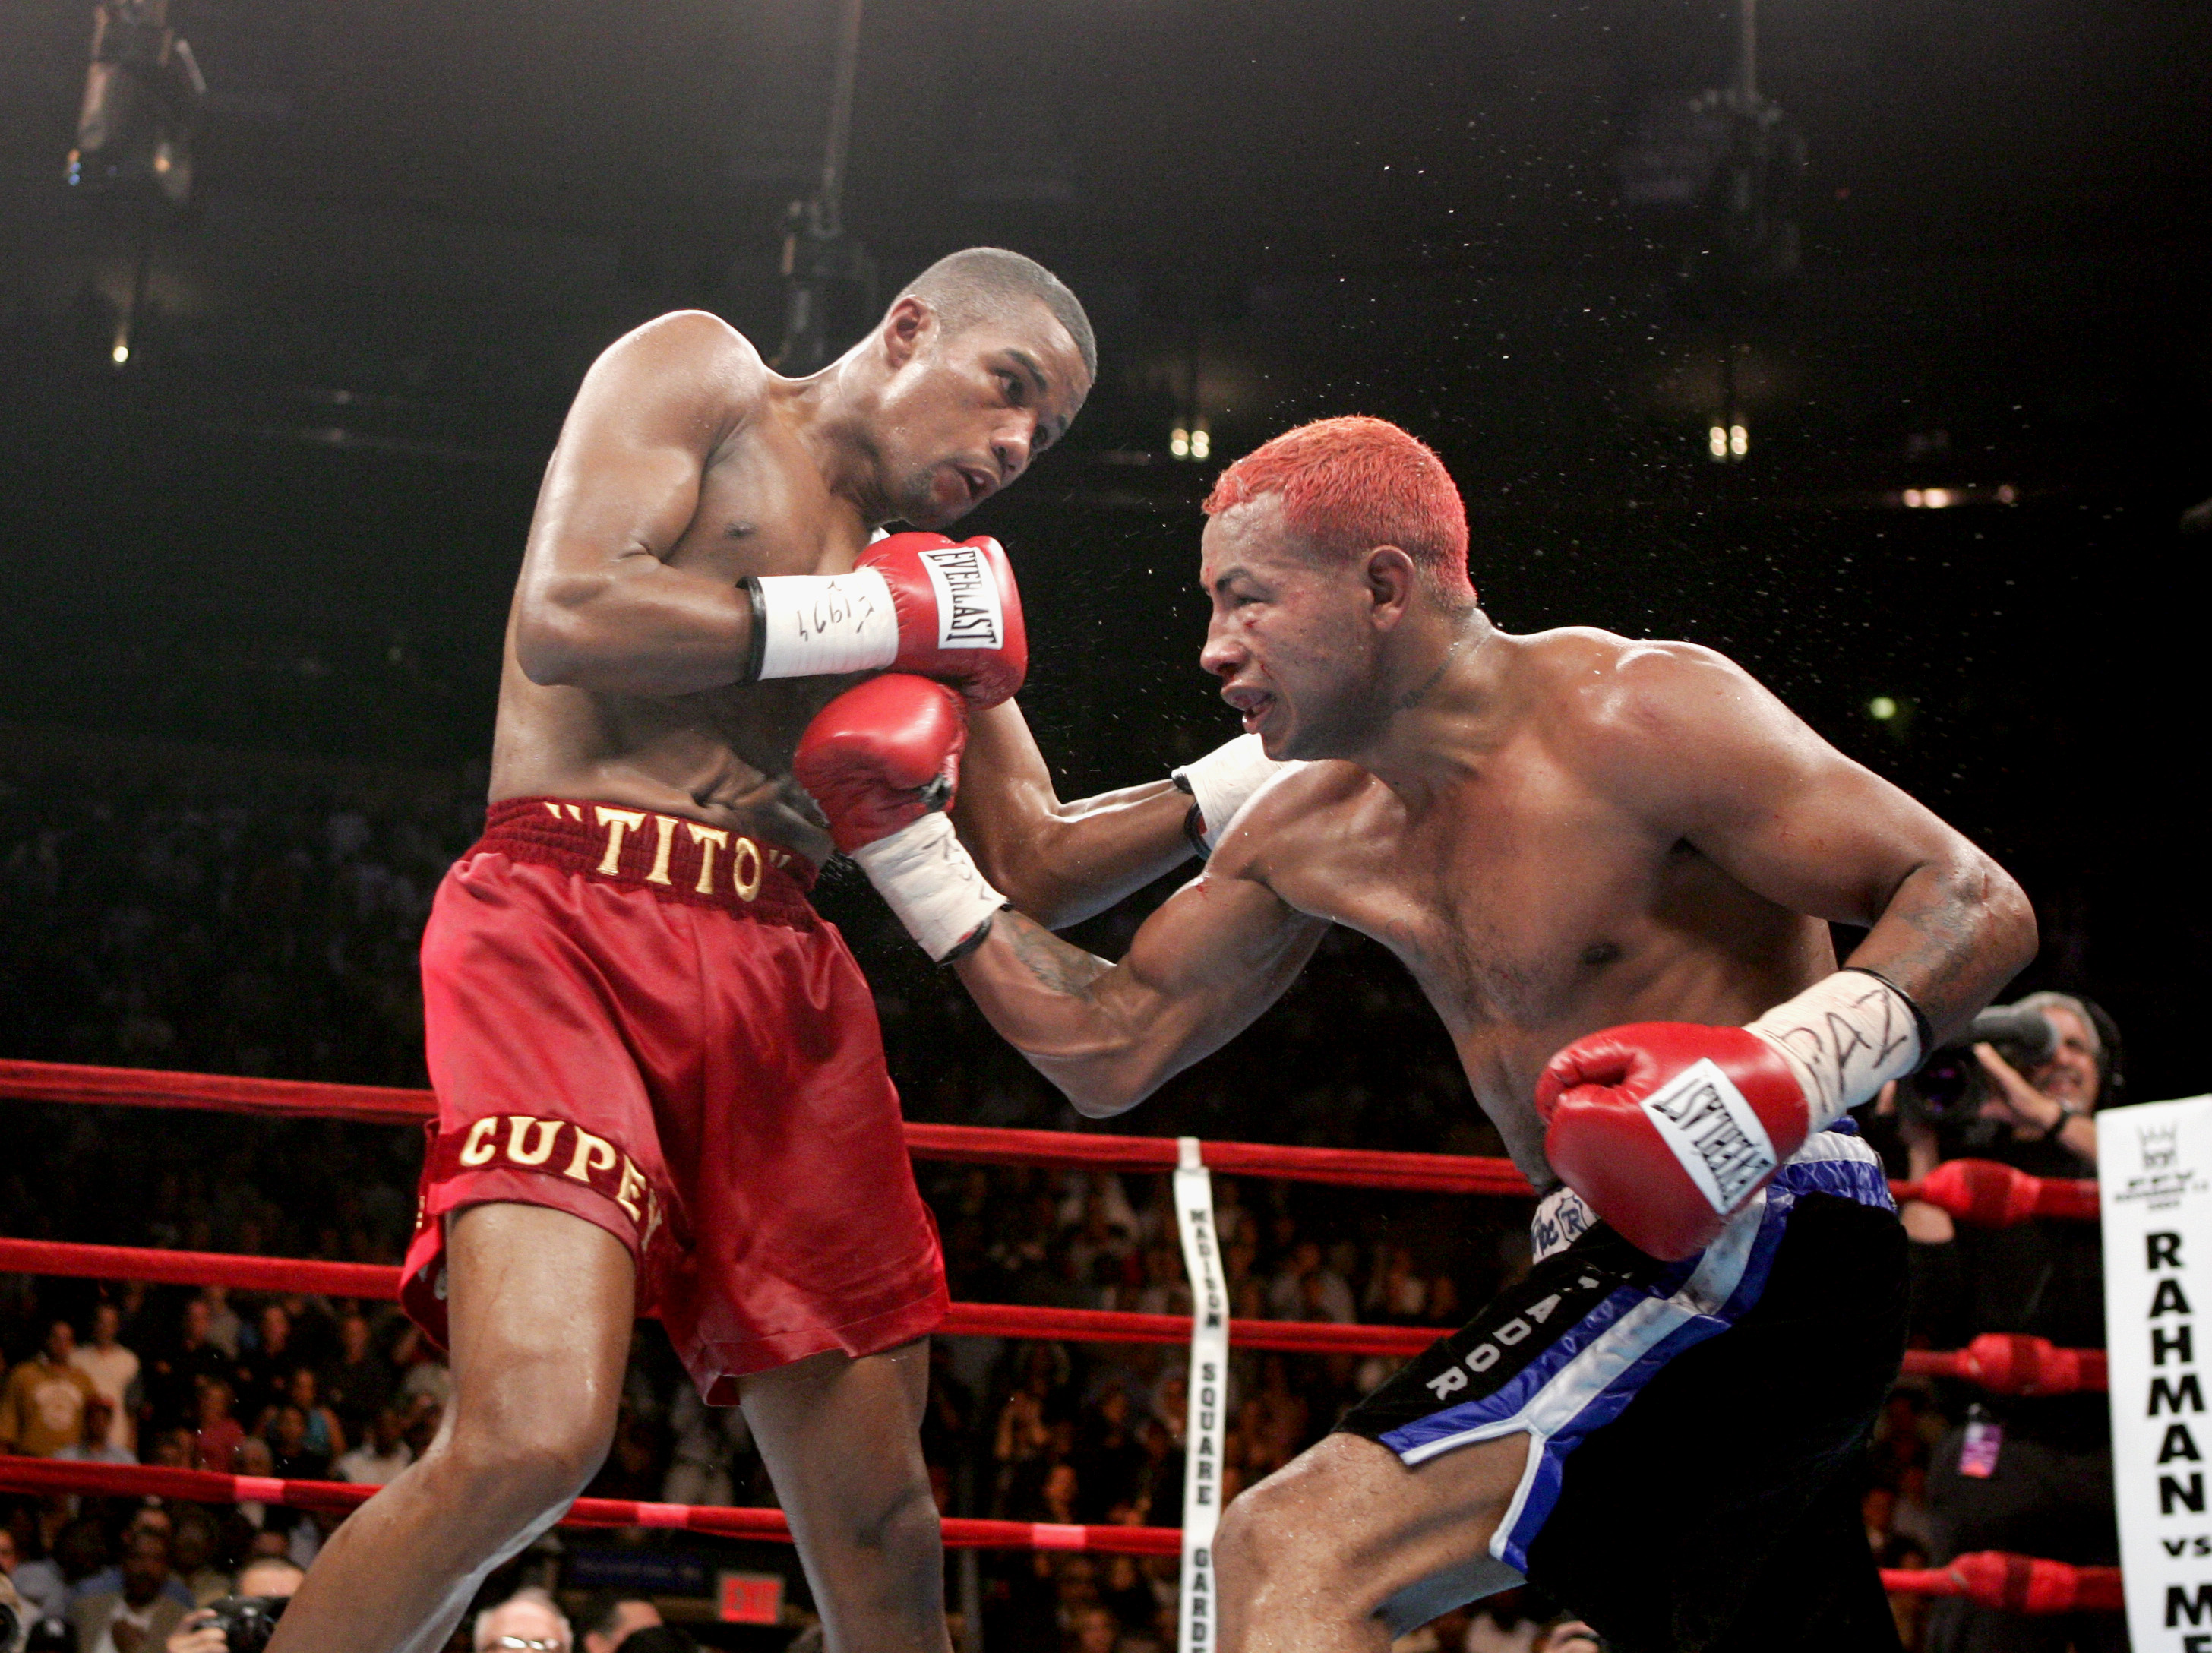 NEW YORK - OCTOBER 2:  Felix 'Tito' Trinidad Jr. (red shorts) fights with Ricardo Mayorga (black shorts) during a bout for the WBA North American and North American Boxing Council middleweight titles at Madison Square Garden on October 2, 2004 in New York